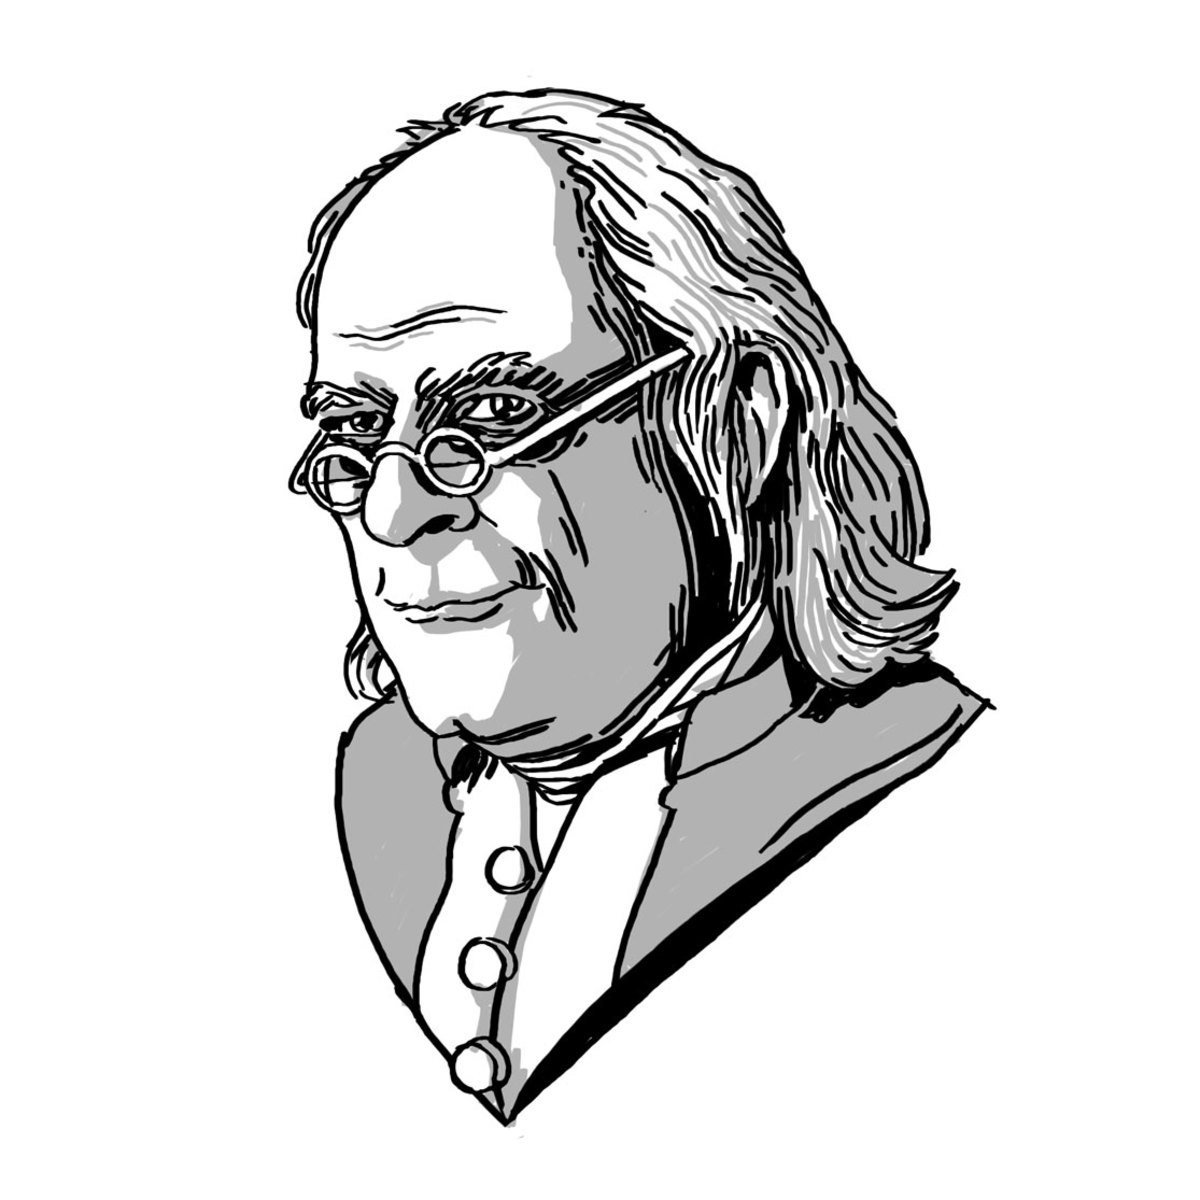 Benjamin Franklin Illustration